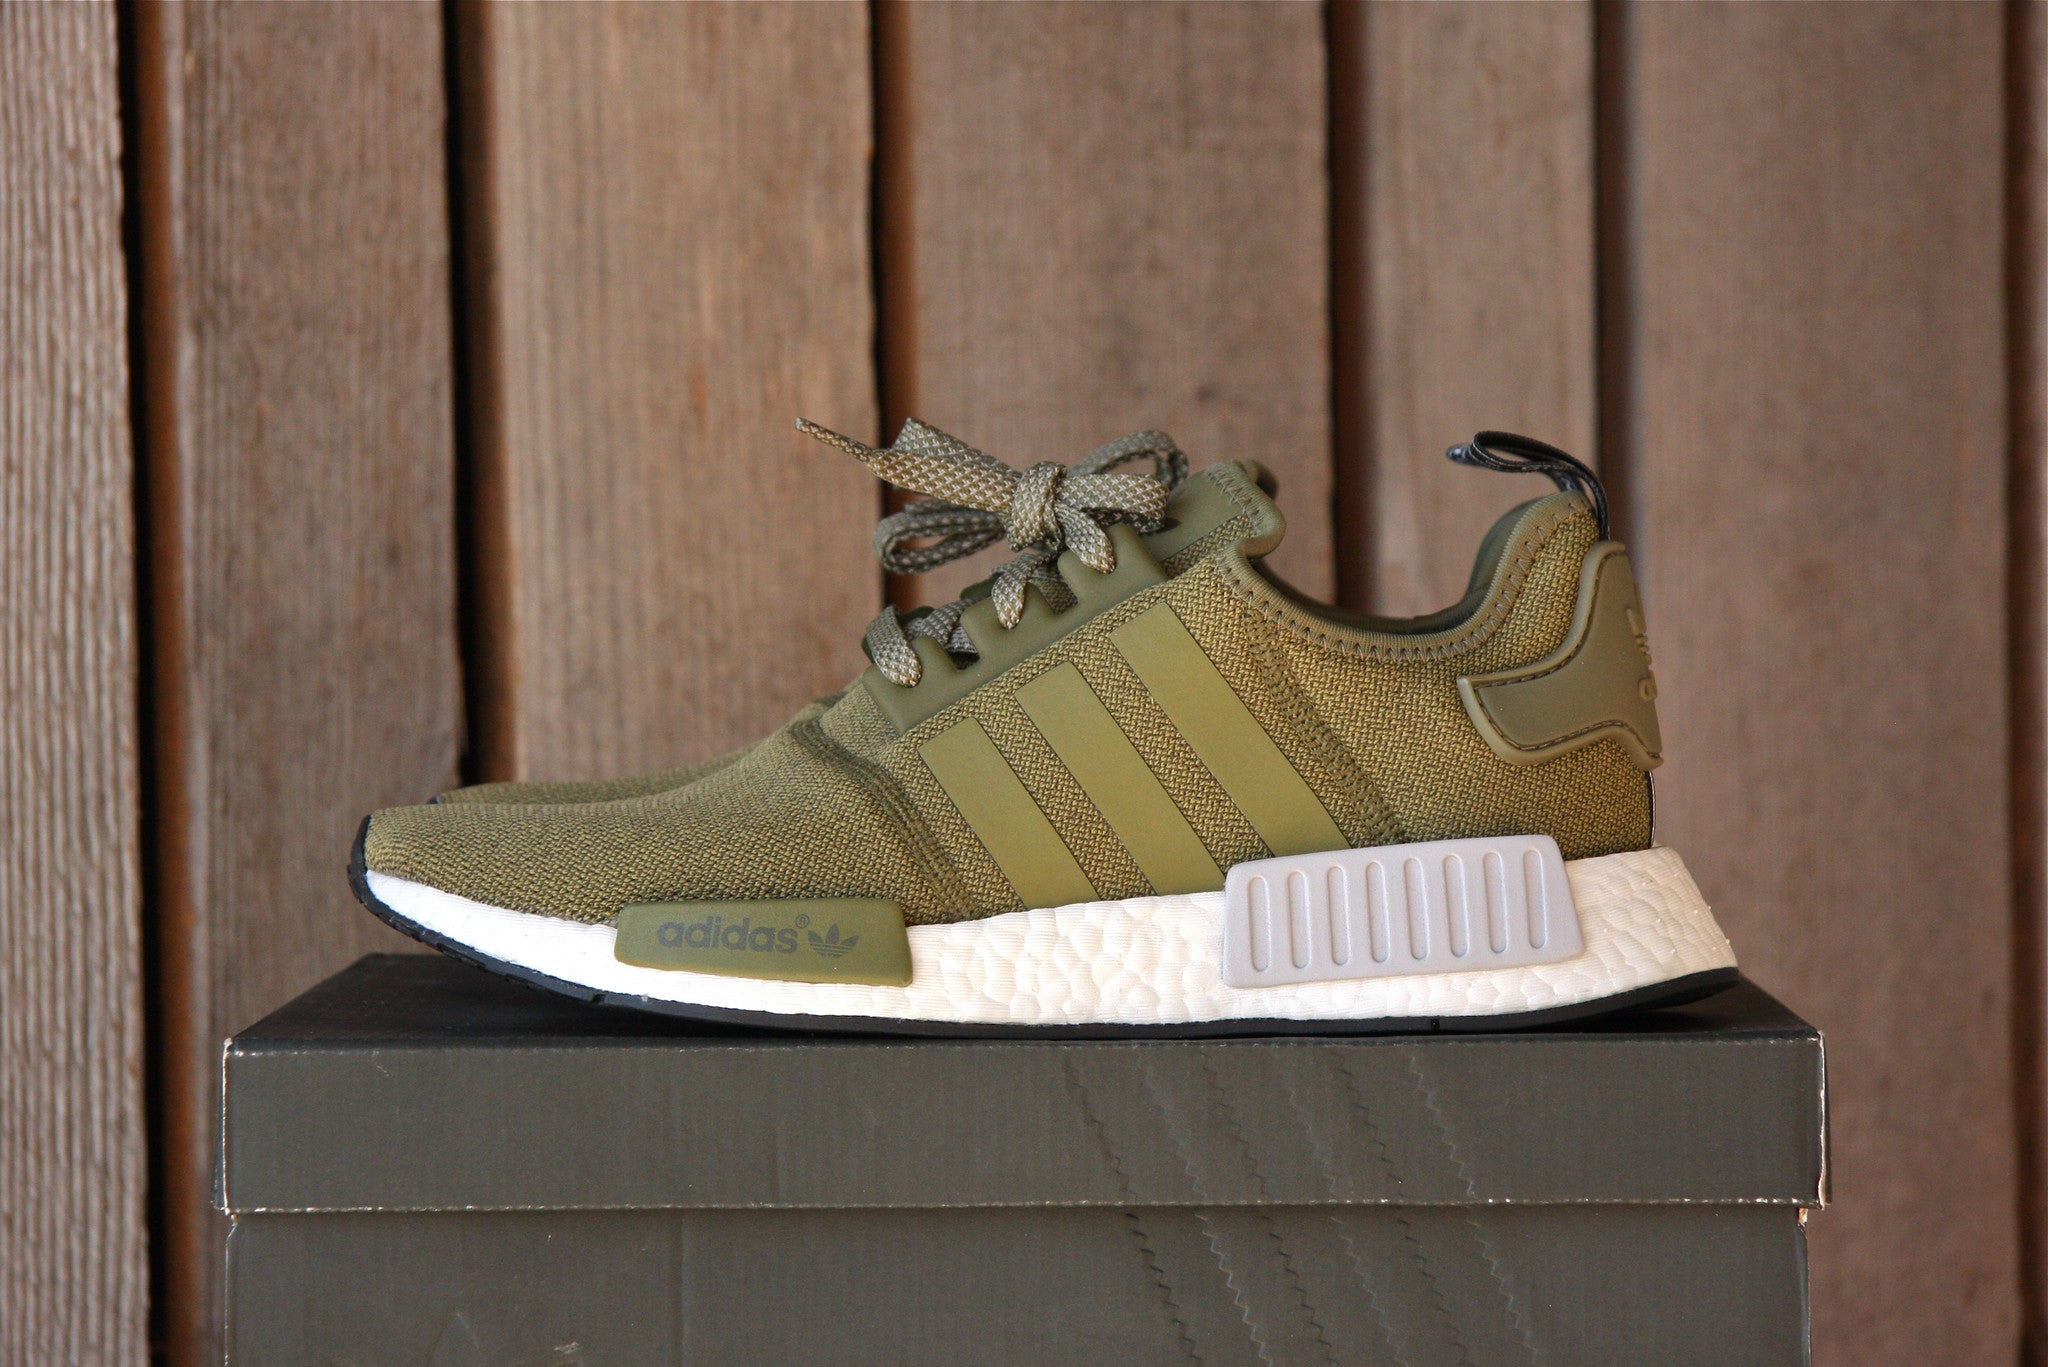 Adidas NMD R1 Footlocker Exclusive (Olive)